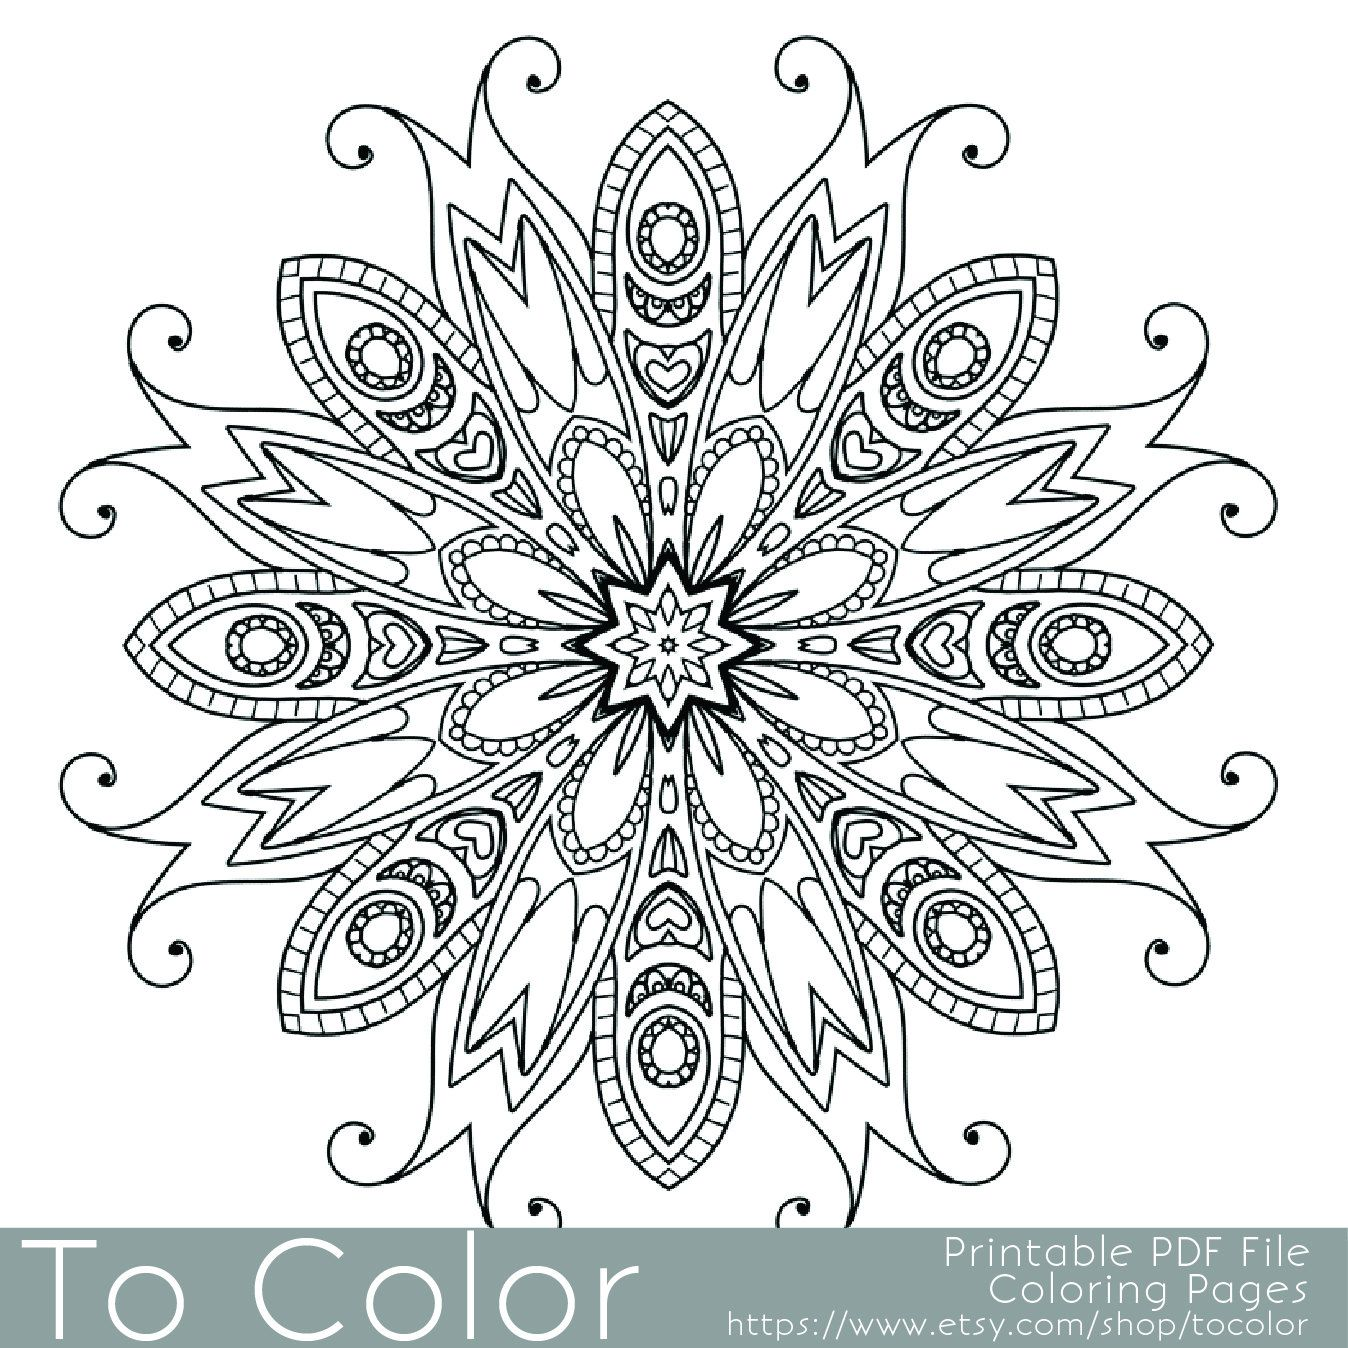 Detailed Printable Coloring Pages For Adults Gel Pens